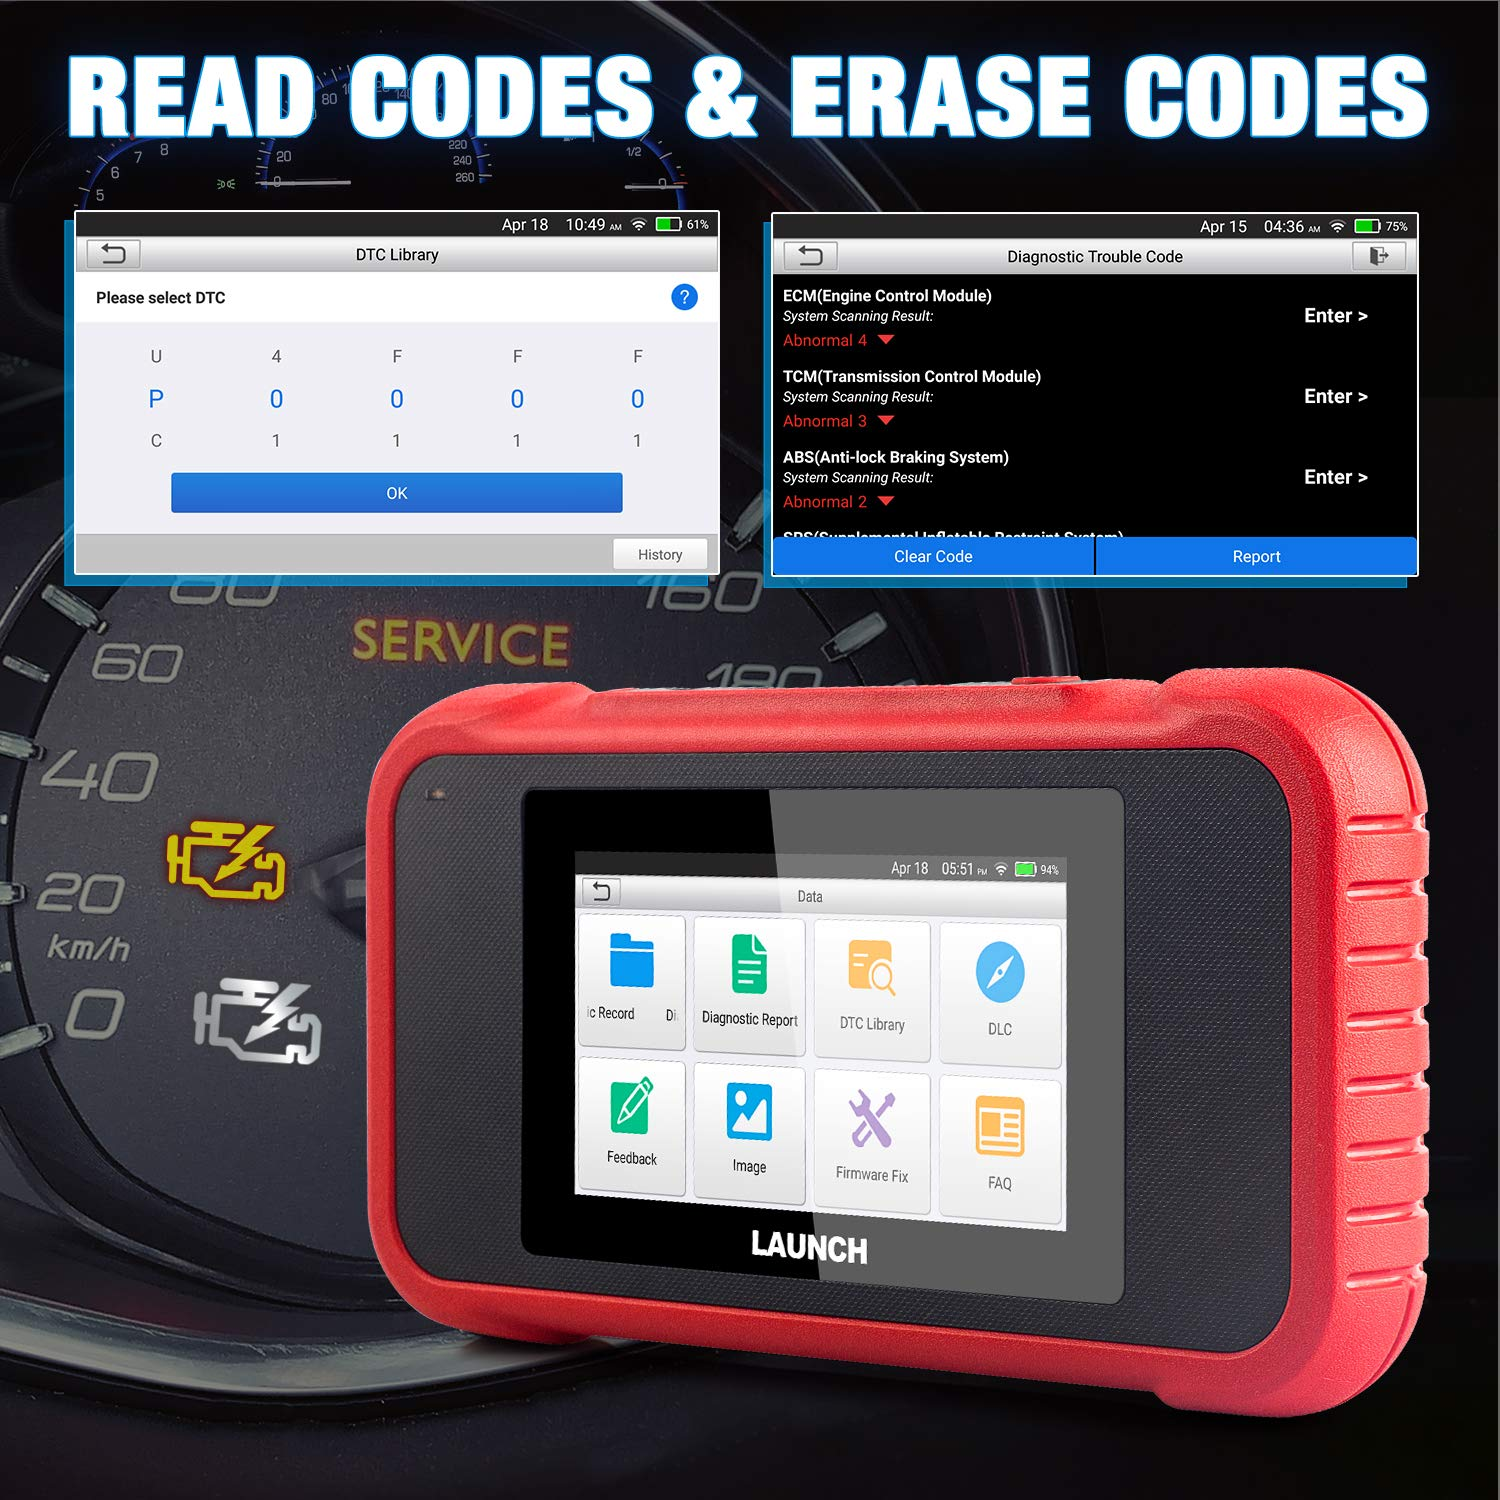 LAUNCH Creader 3008 OBD2 Scanner Automotive Car Diagnostic Tool Support Full OBD2 Function with Battery Voltage Testing Function OBDII Engine Code Reader Diagnostic Tool Lifetime Free Update